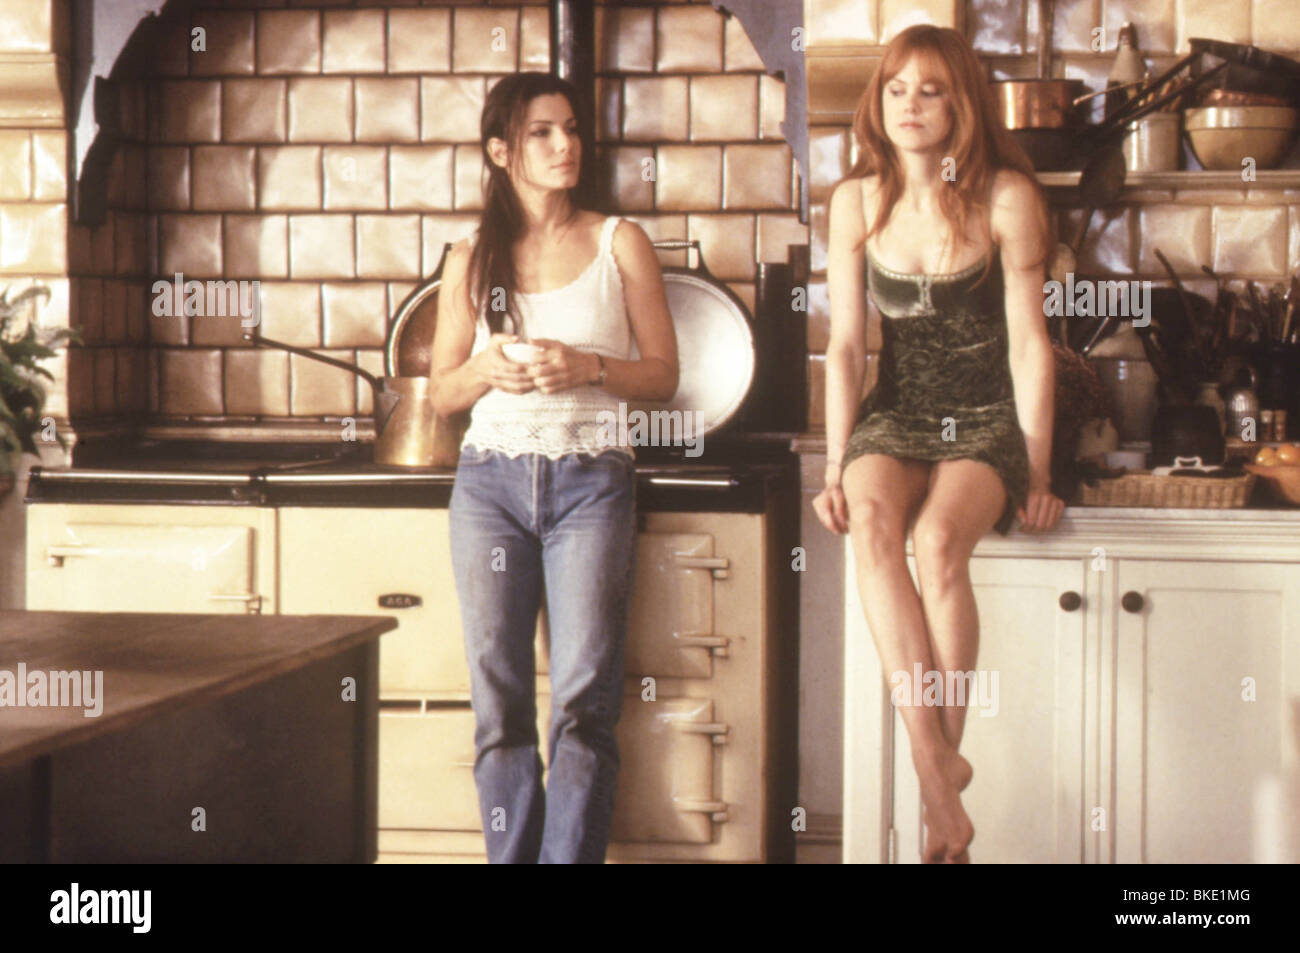 PRACTICAL MAGIC (1999) SANDRA BULLOCK, NICOLE KIDMAN PRMG 102 - Stock Image